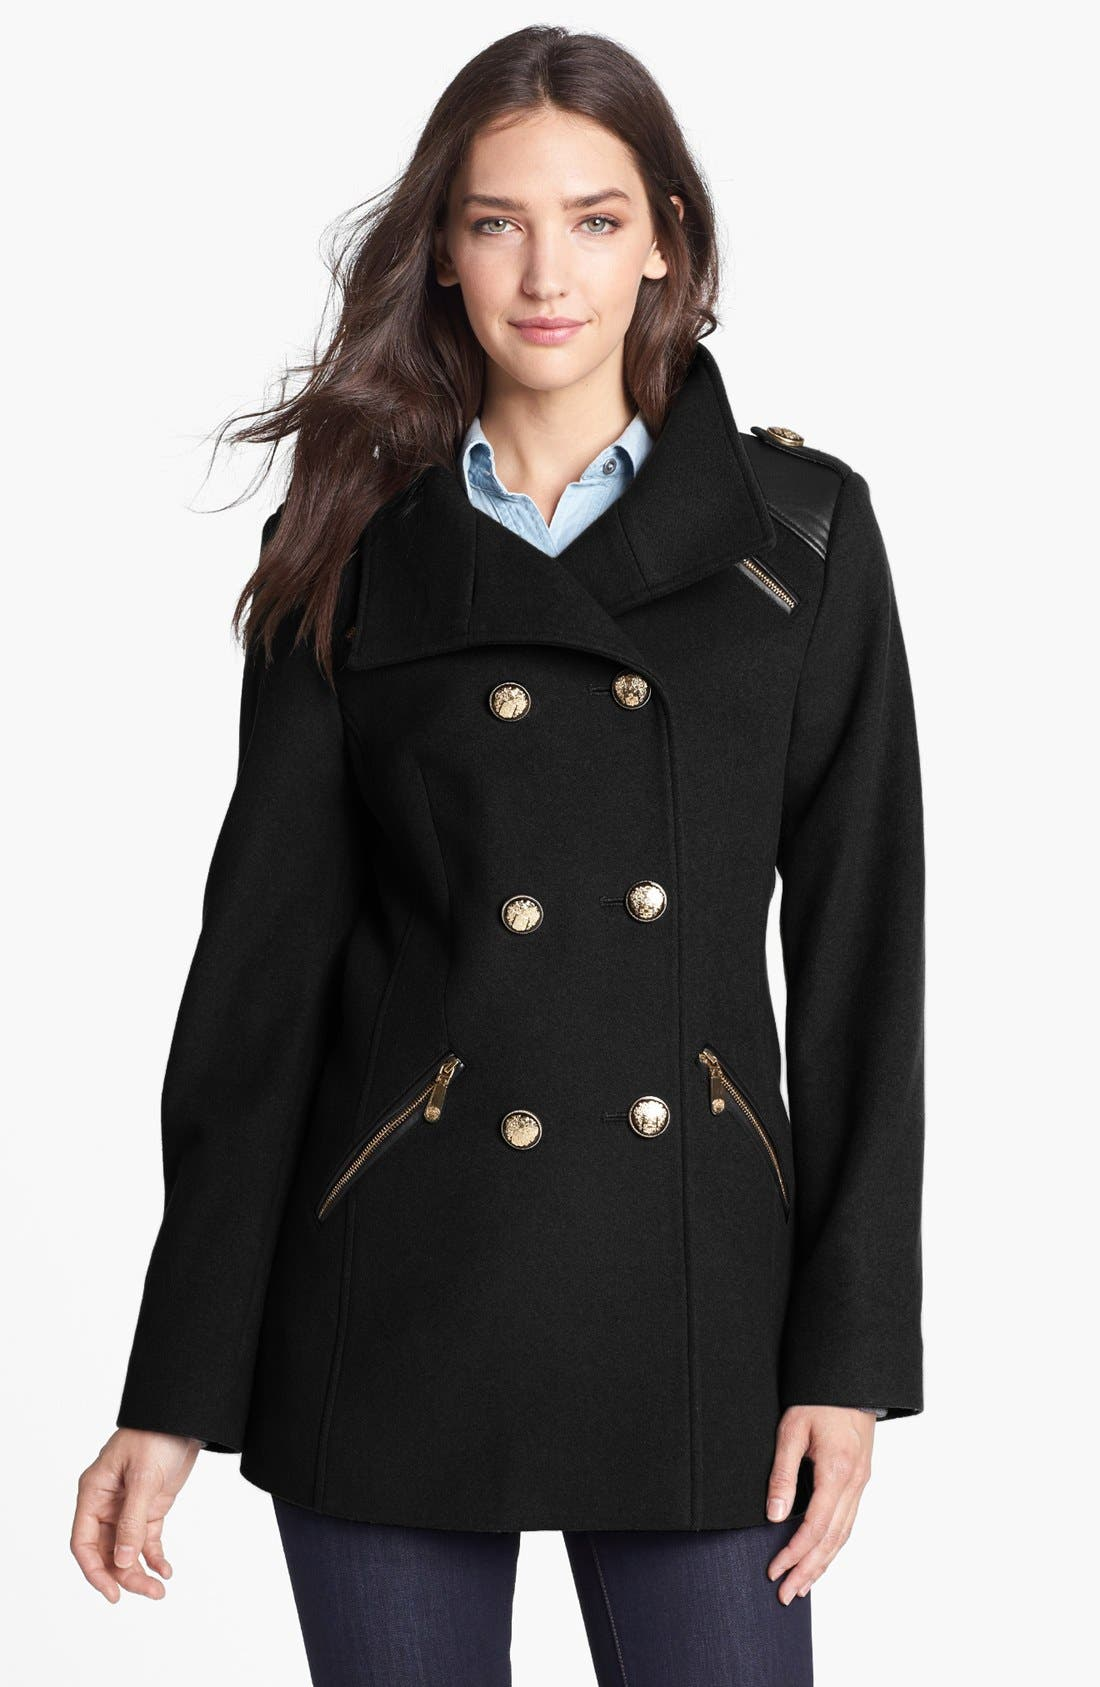 Alternate Image 1 Selected - Vince Camuto Wool Blend Military Peacoat (Petite)